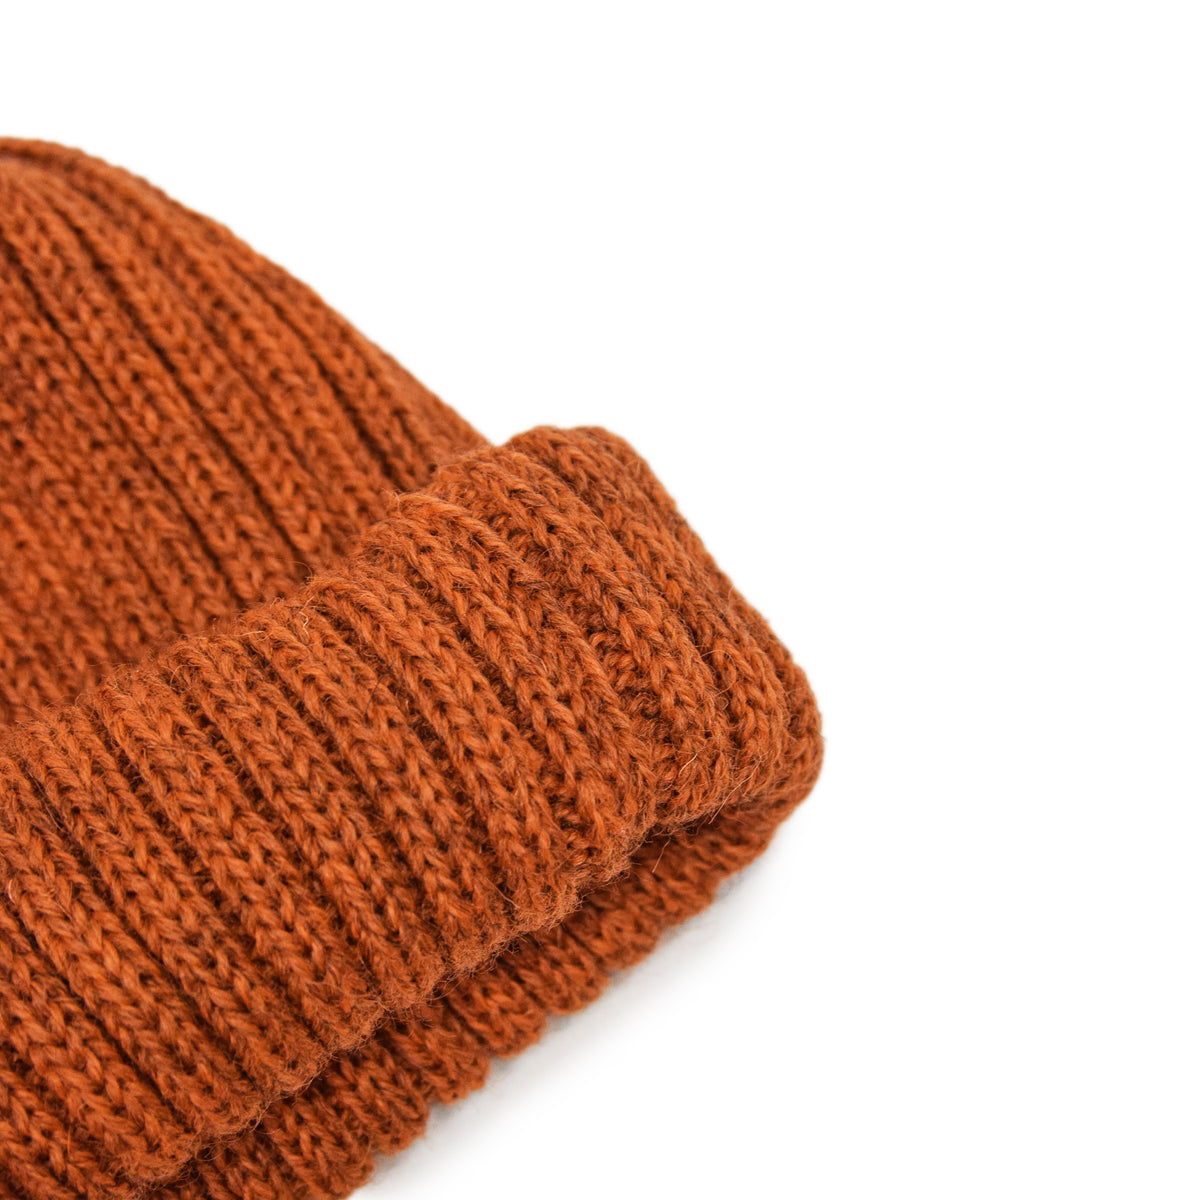 Connor Reilly Wool Watch Cap Rust Made In England Wool Detail